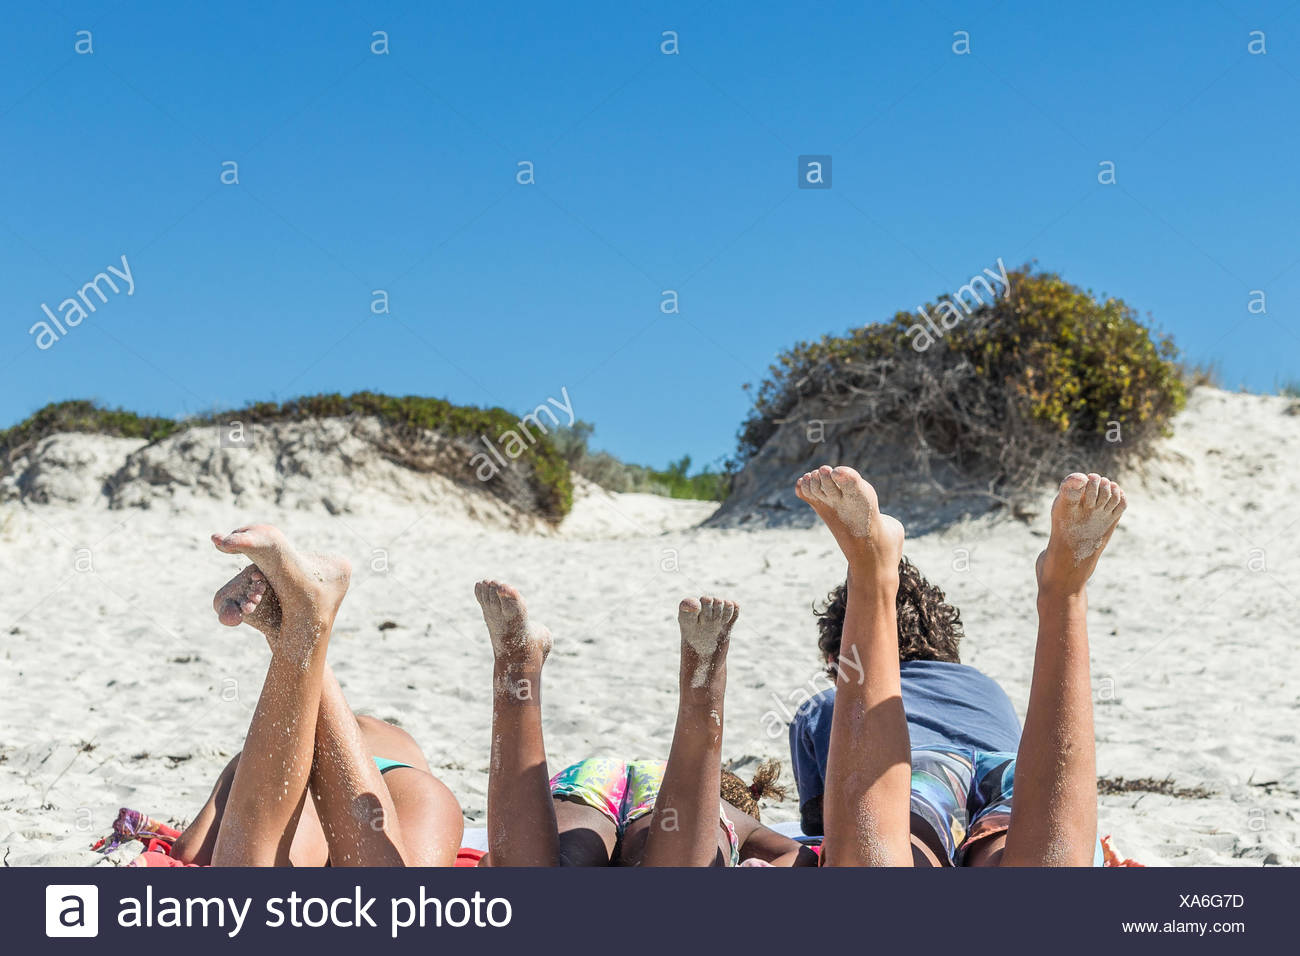 Three children lying on the beach with their legs in the air - Stock Image